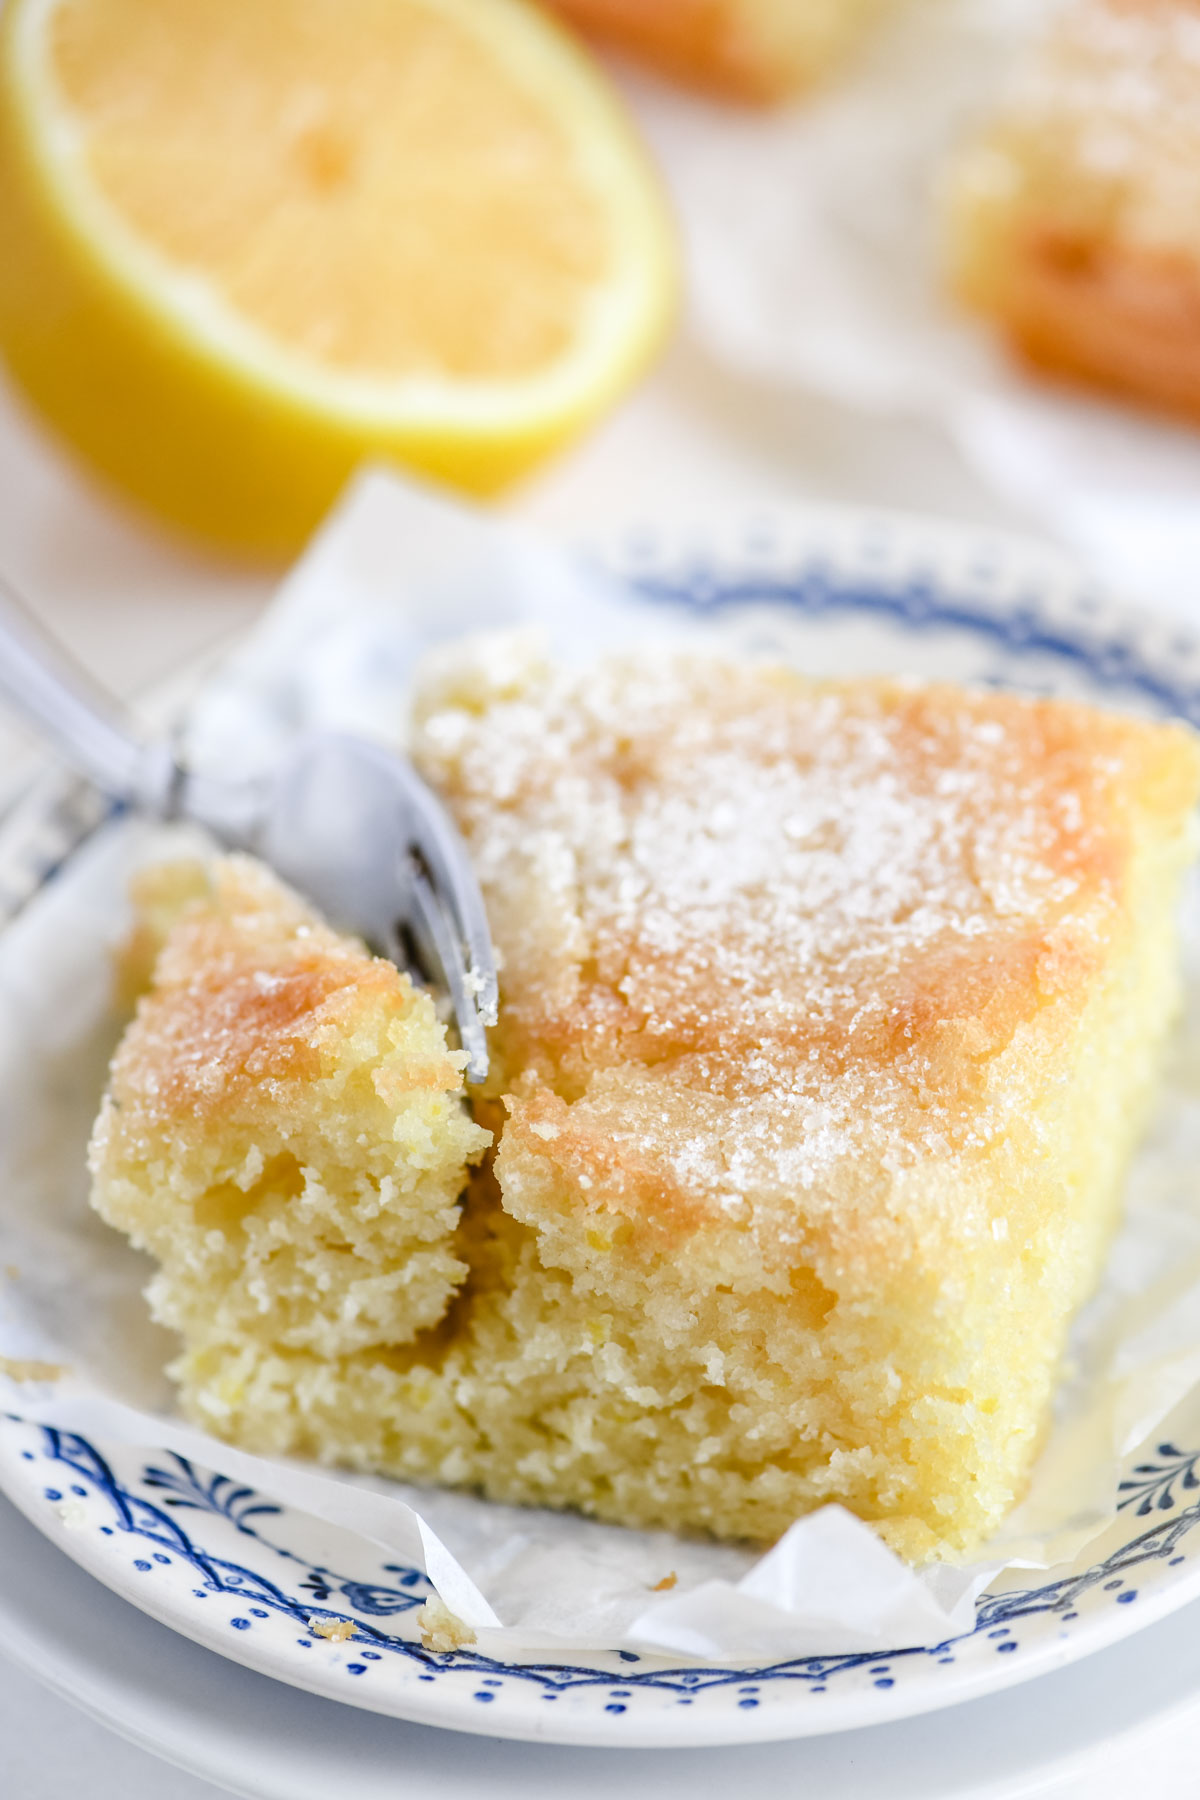 a slice of lemon crunch cake on a plate with fork